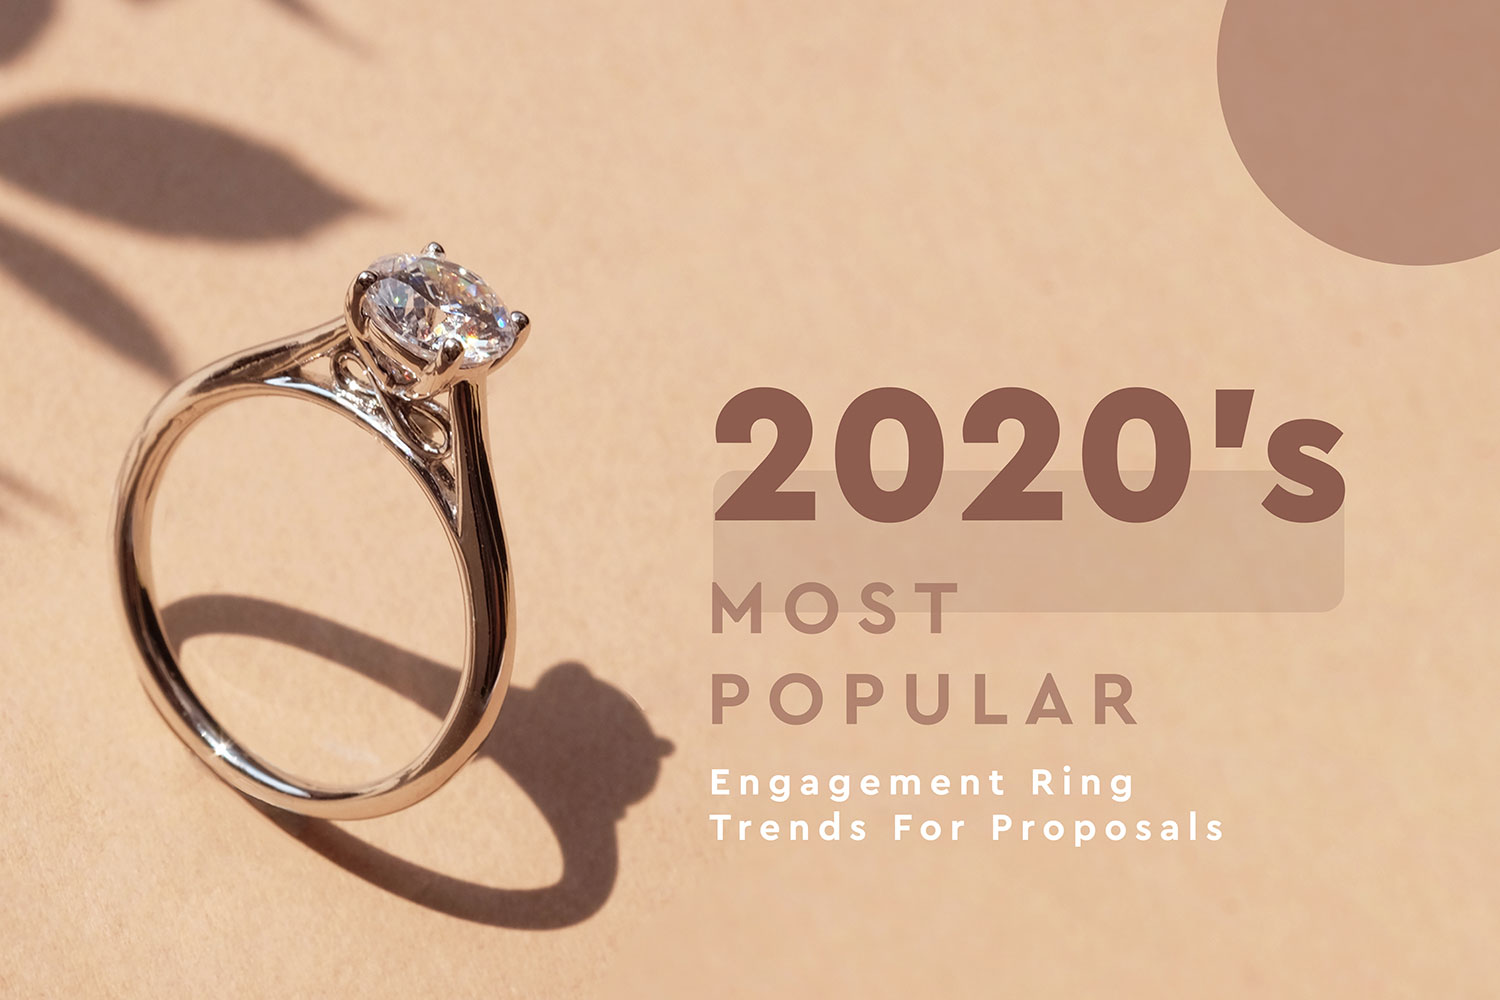 2020's Most Popular Engagement Ring